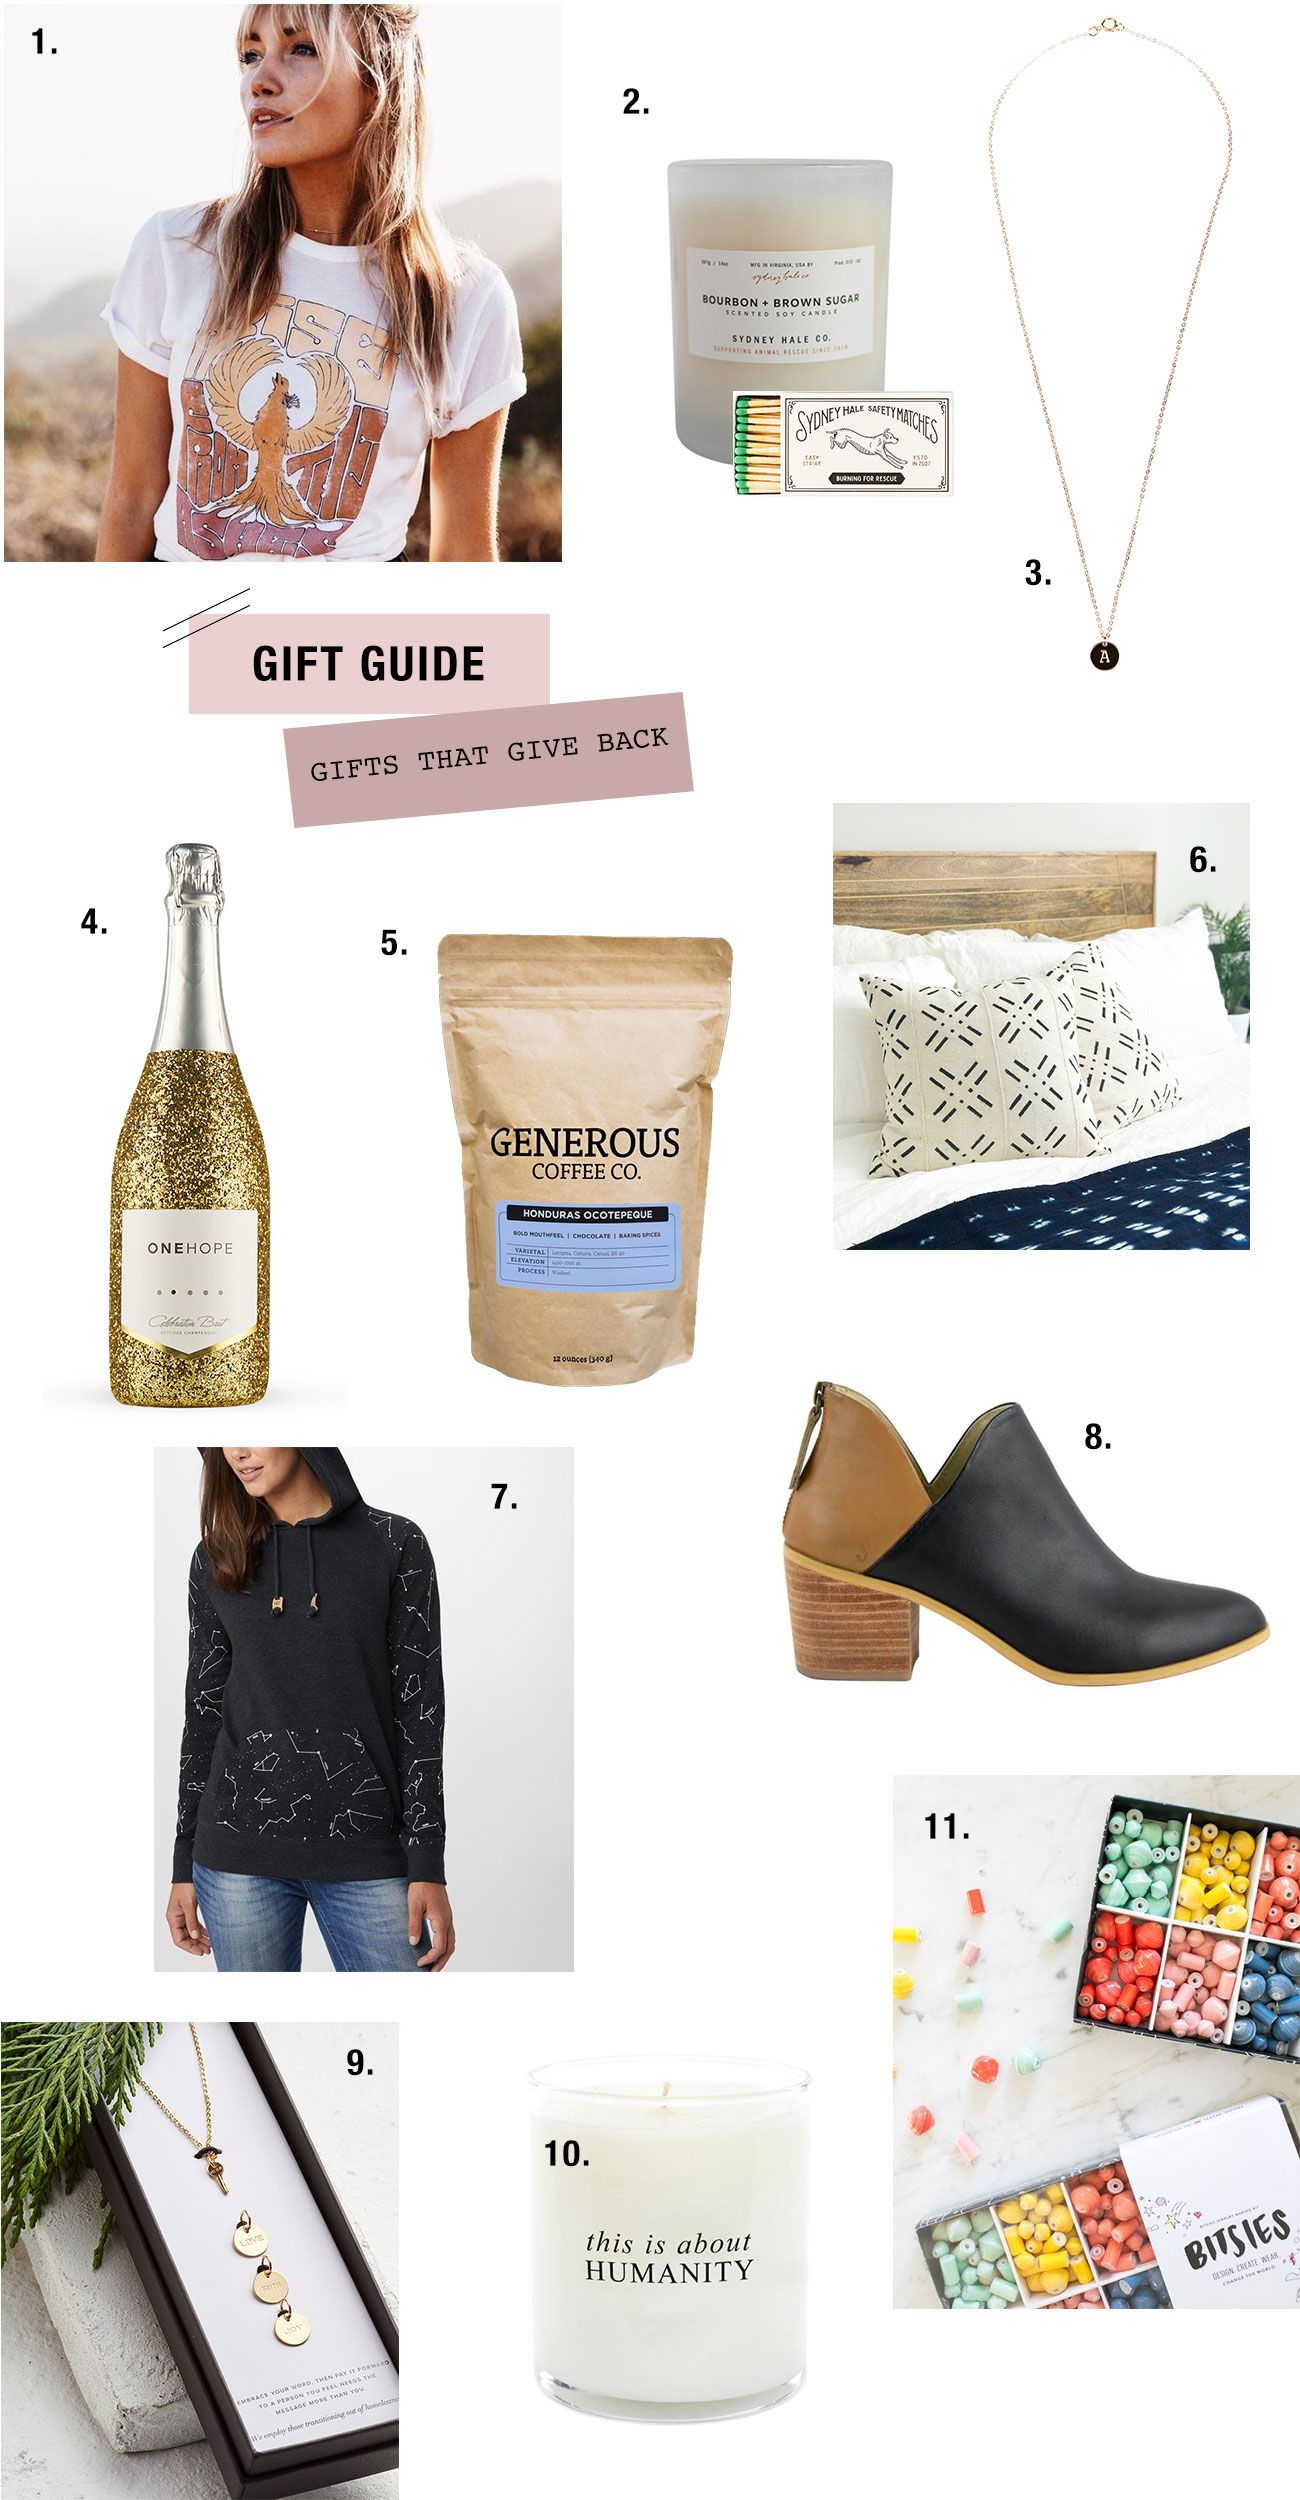 Gifts that Give Back for #GivingTuesday  sc 1 st  Pinterest & Celebrate #GivingTuesday with Gifts that Give Back   GIFT GUIDE ...